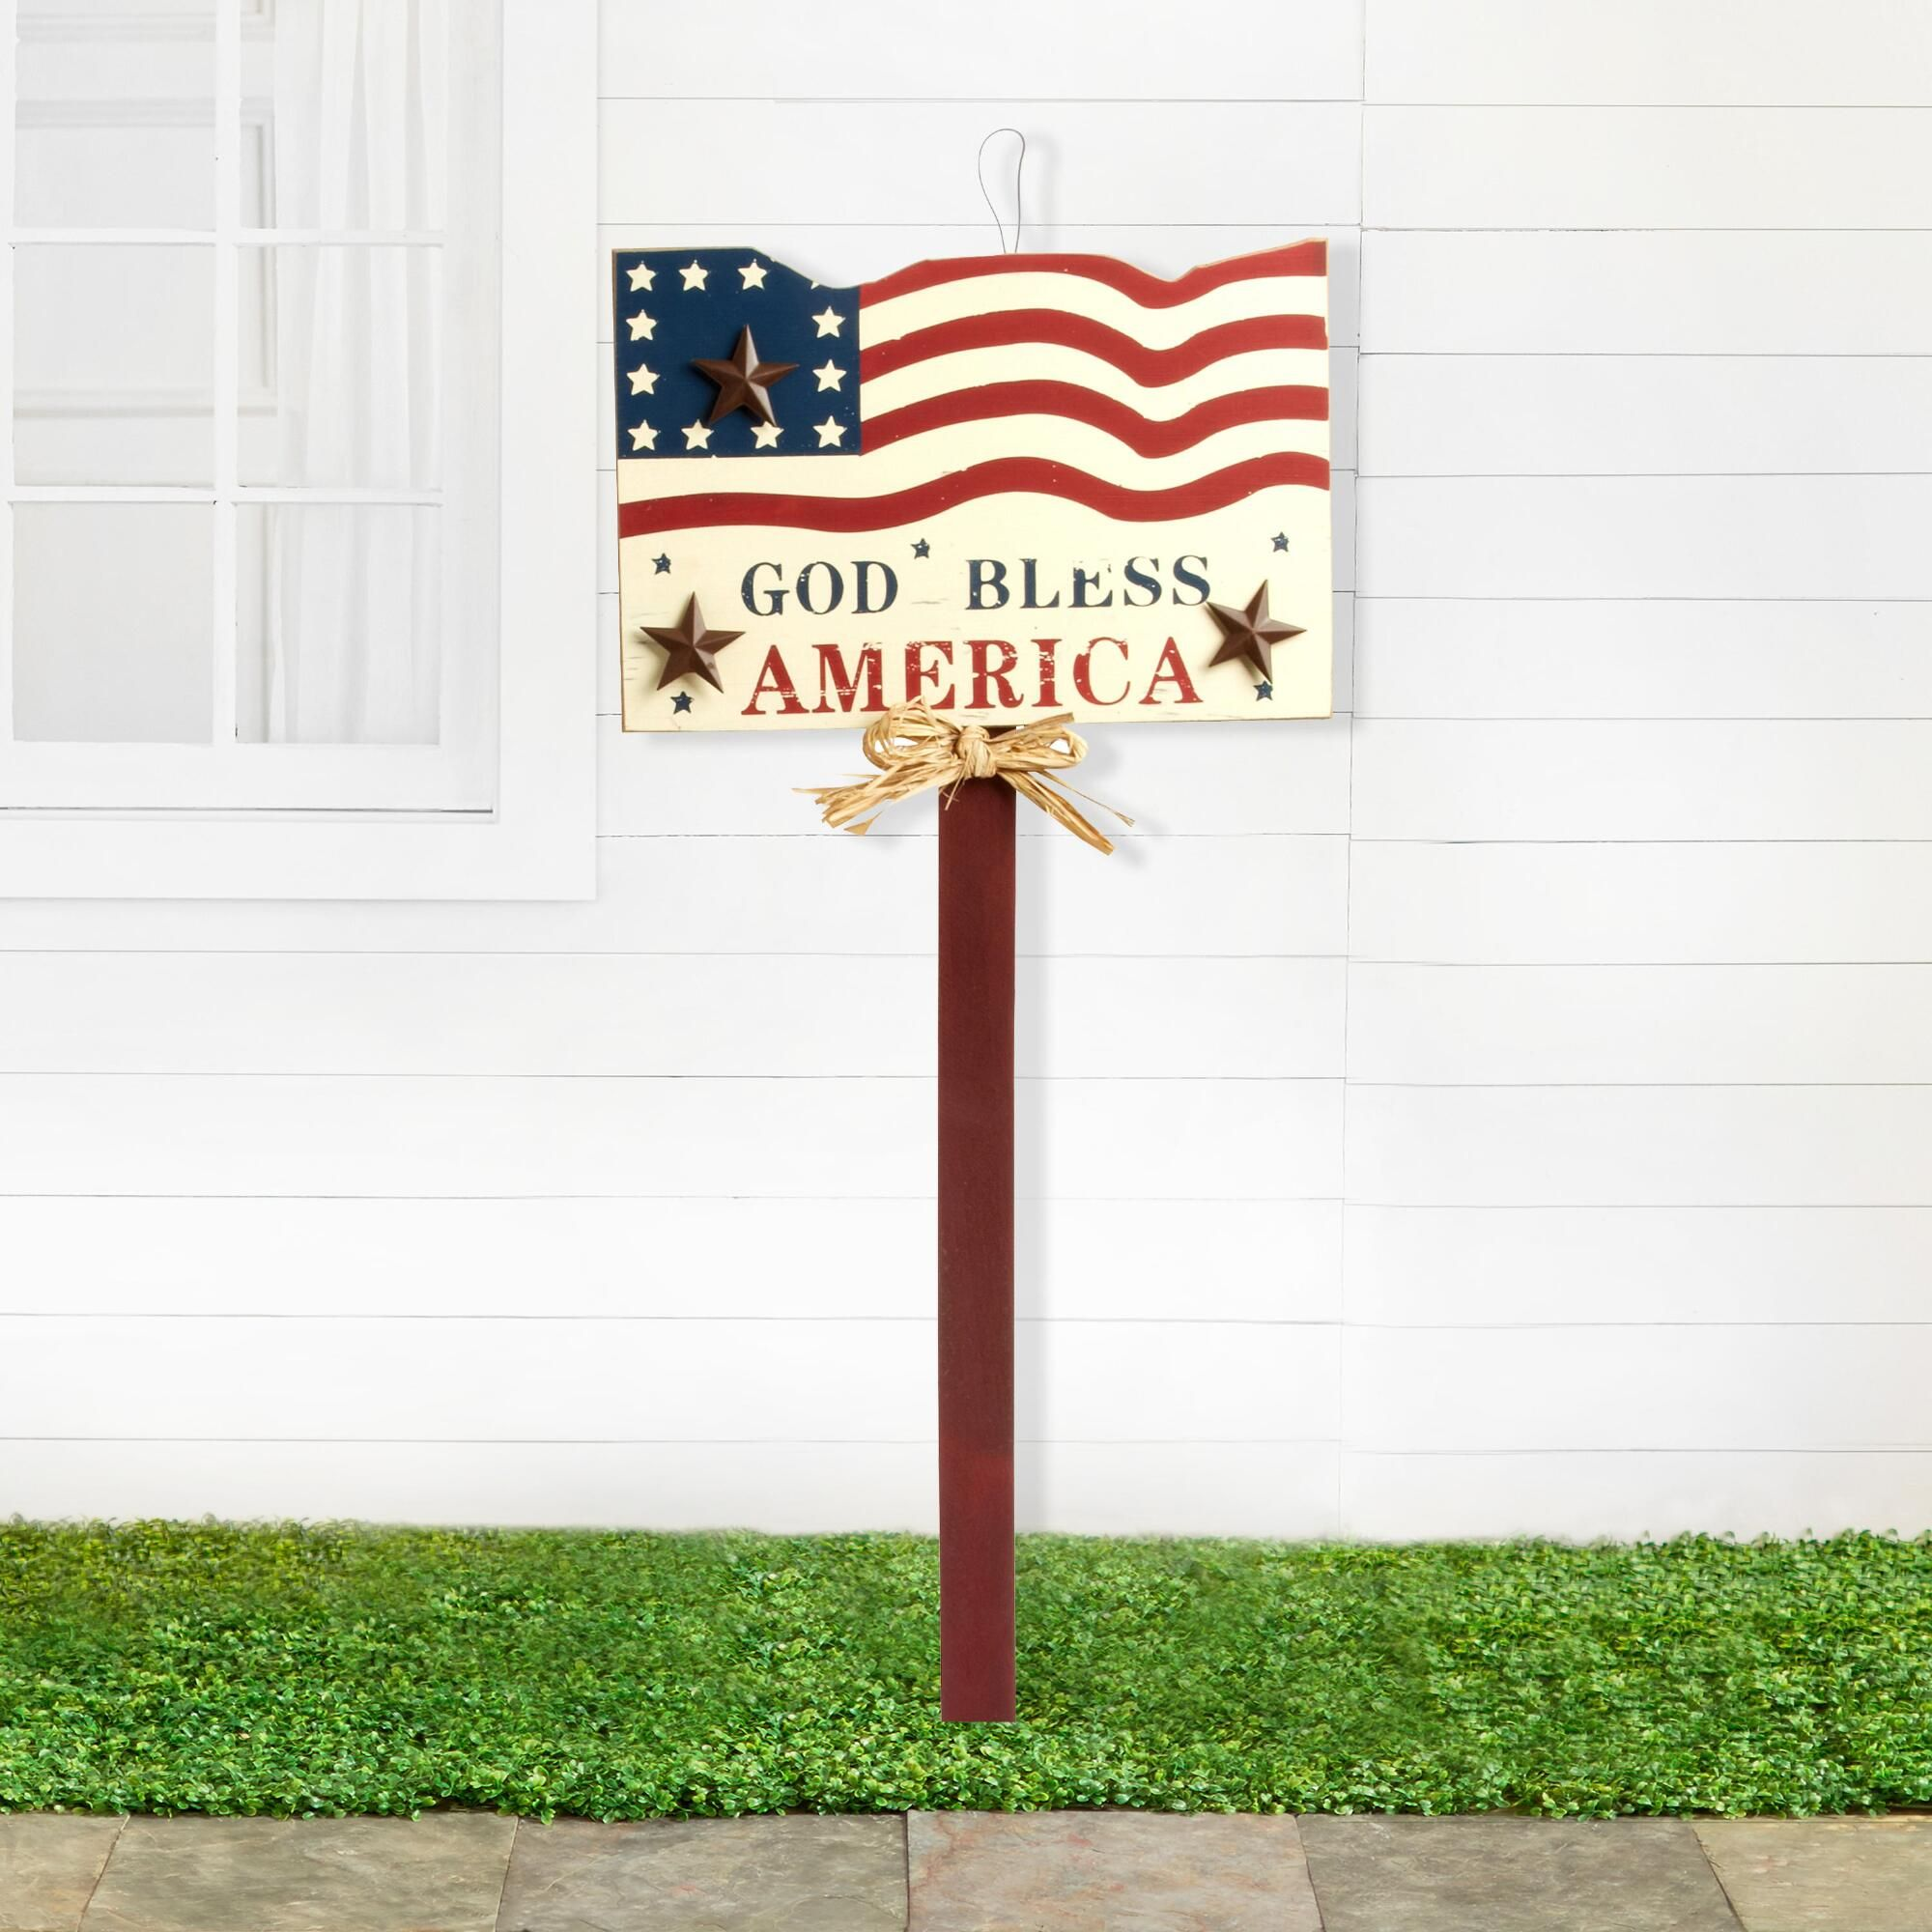 Pledge Allegiance To Your Country With Our Wooden Yard Stake Topped By A God Bless America Plaque With A Flag Desi Christmas Tree Shop Furniture Gifts Decor